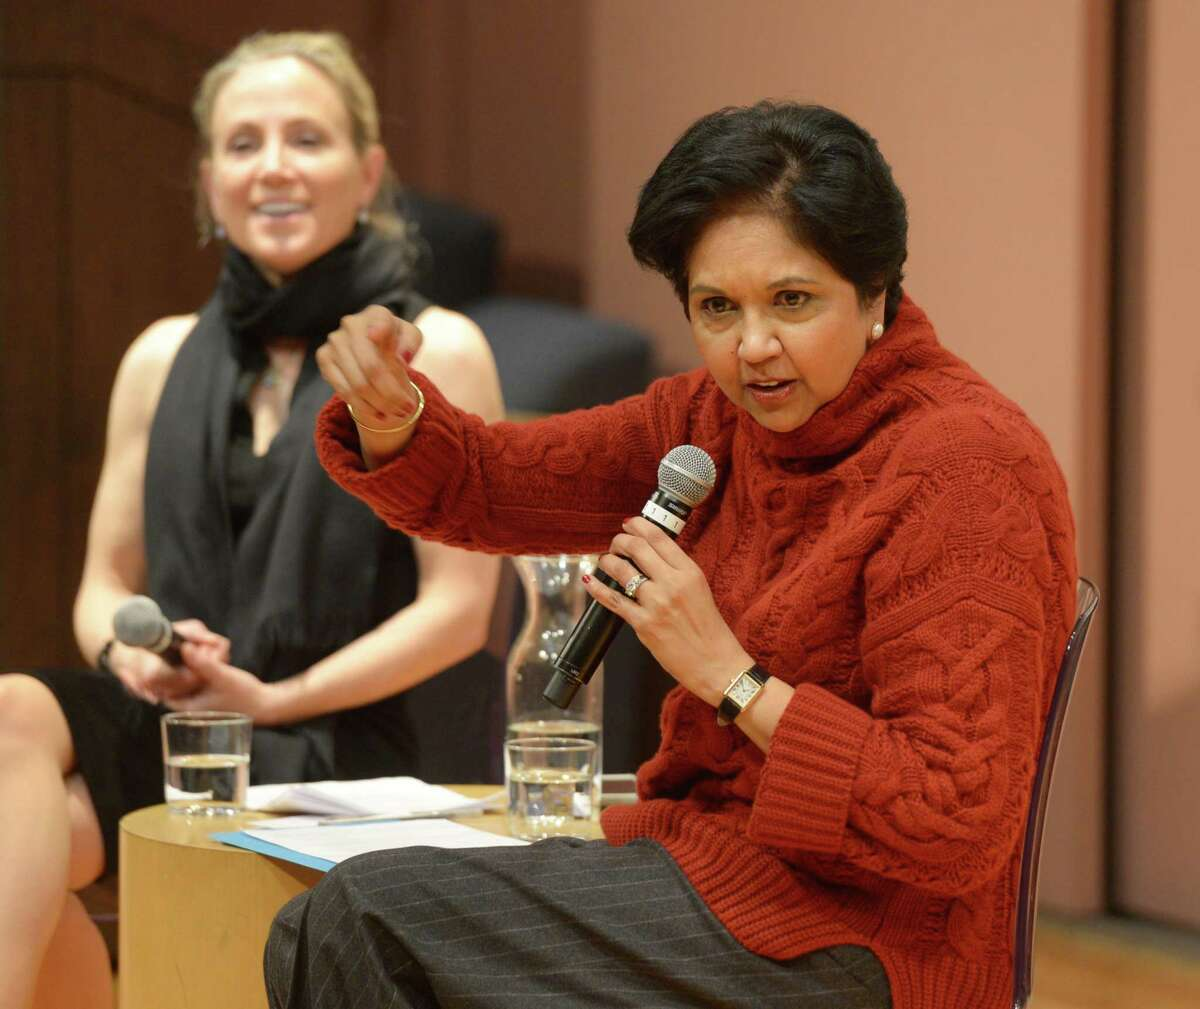 PepsiCo Chairman Indra Nooyi, right, speaks with State Sen. Alex Bergstein, D-Greenwich, during the Community Conversation at Greenwich Library's Cole Auditorium in Greenwich, Conn. Thursday, Jan. 24, 2019. The two discussed how to attract and retain businesses in Connecticut as a small group protested the proposal of tolls outside the event.